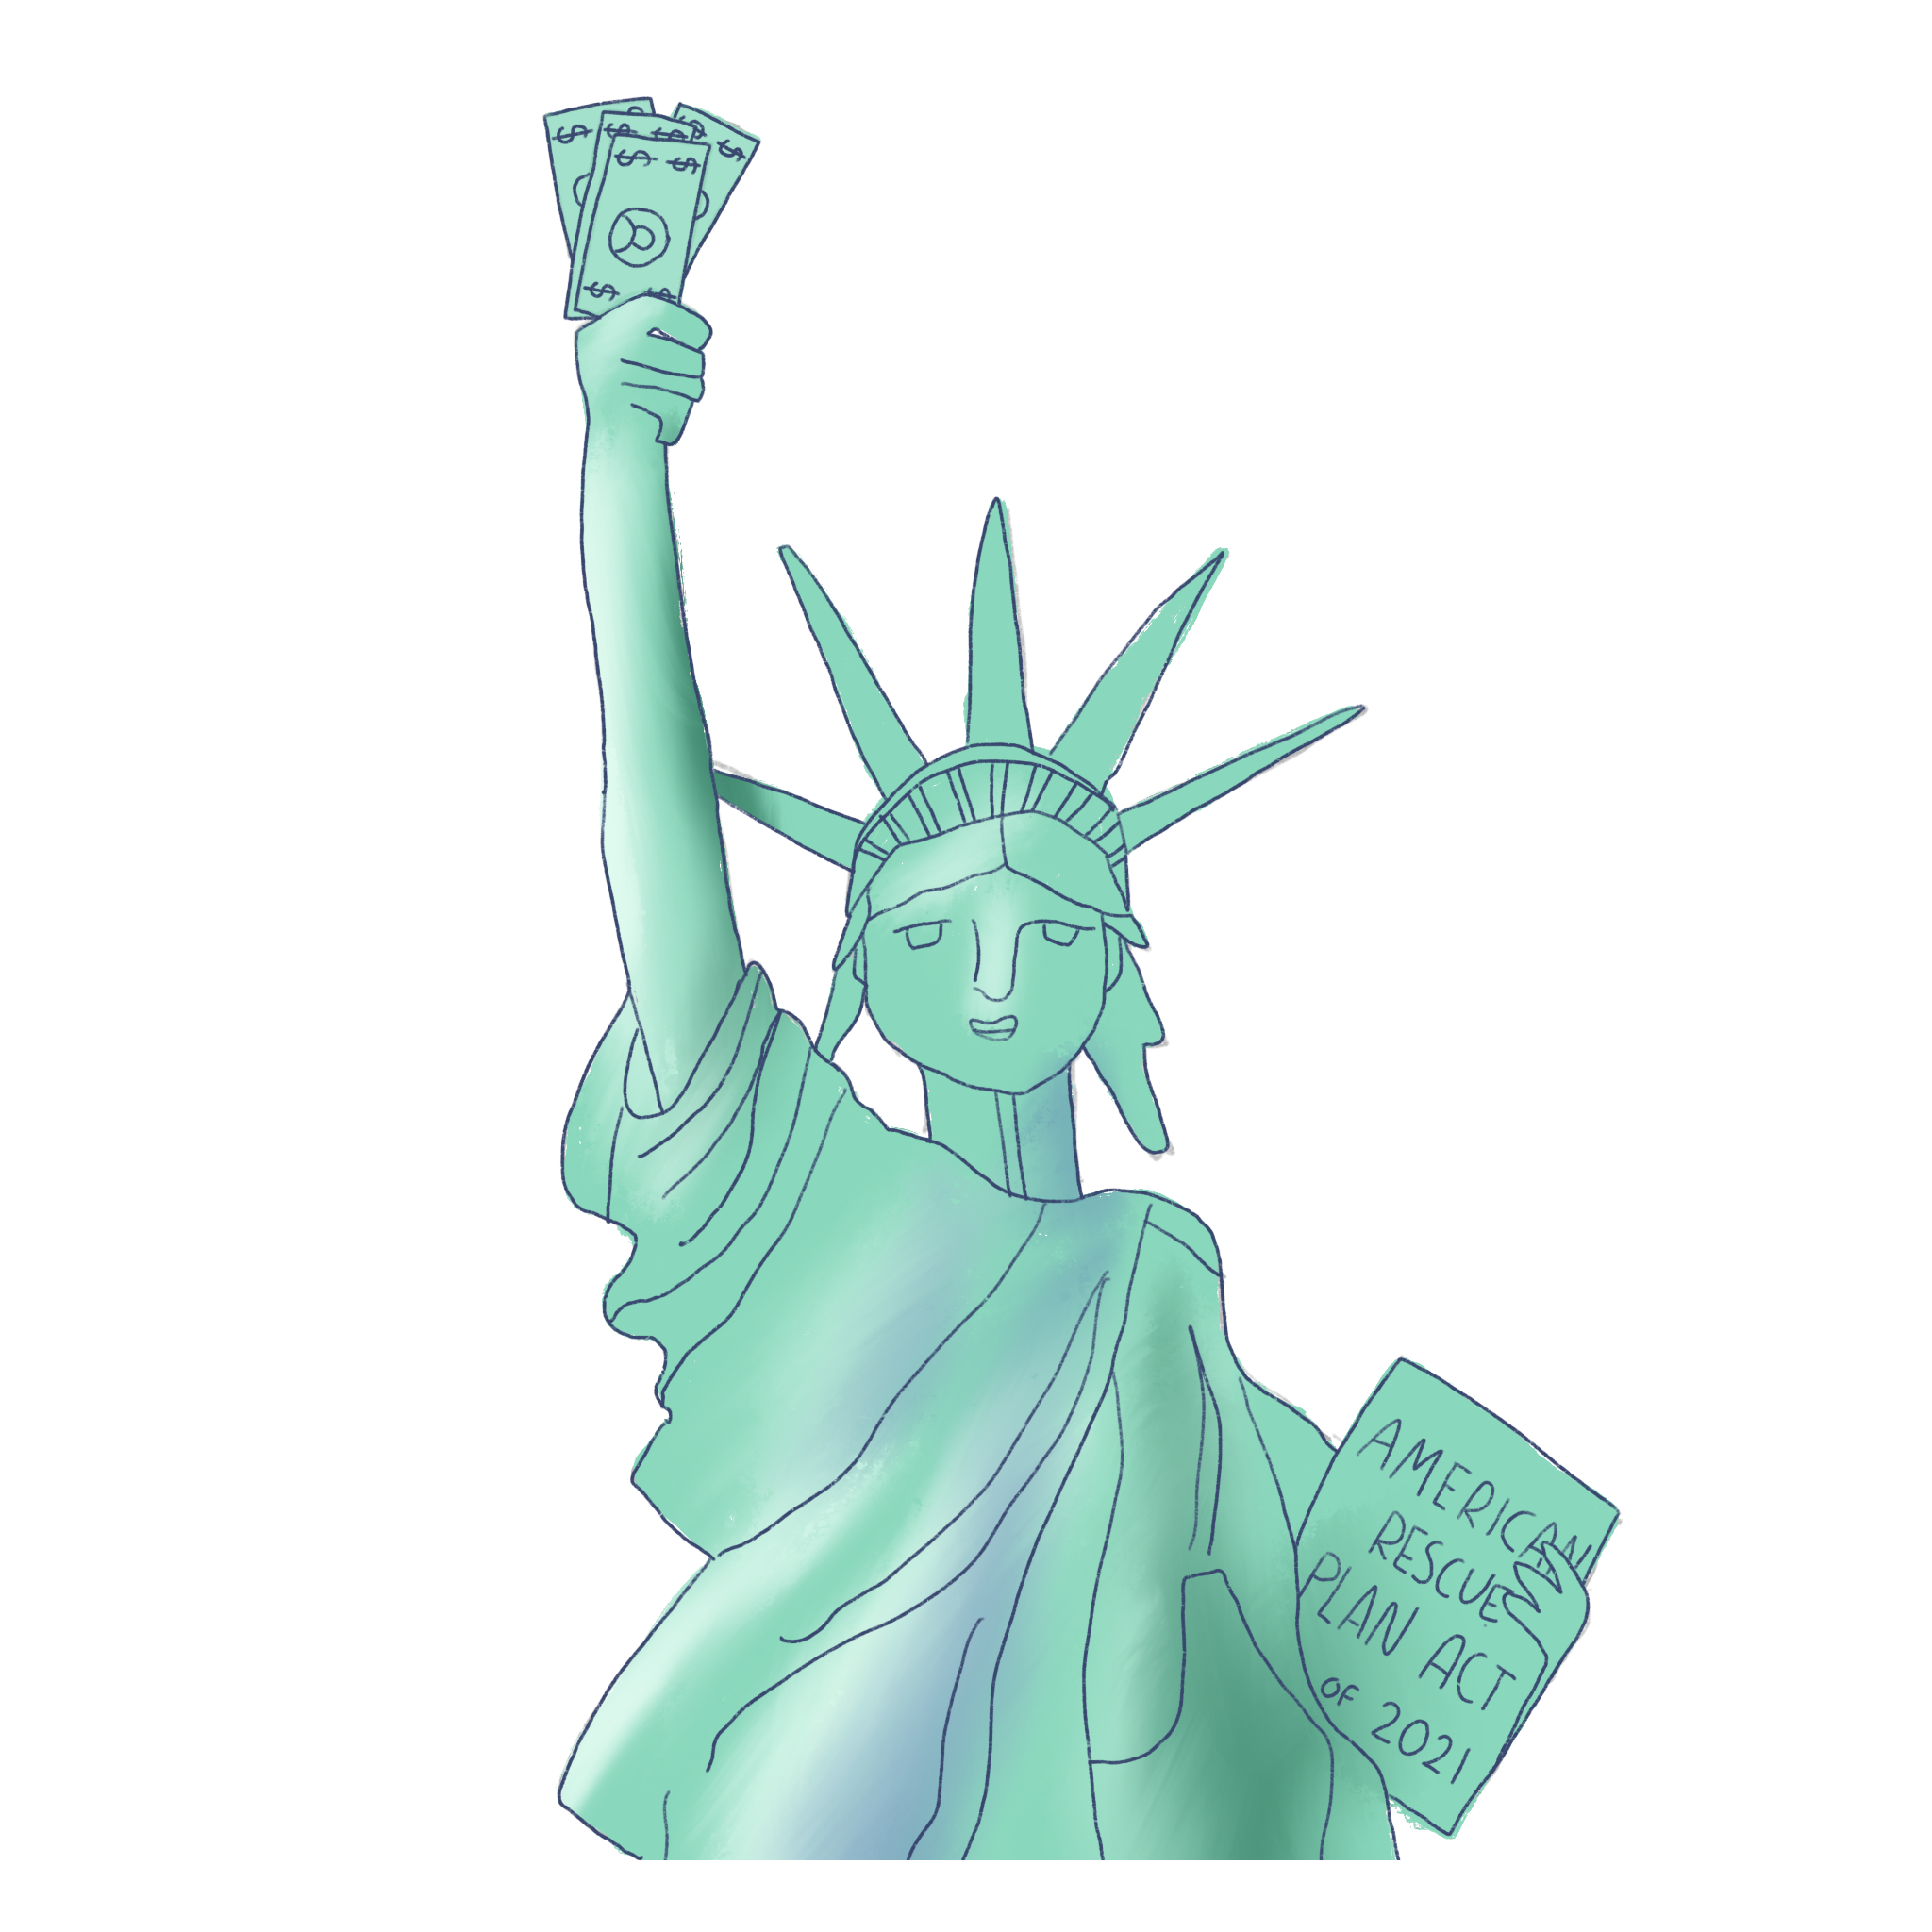 An image of the Statue of Liberty holding cash instead of a torch and with a tablet reading American Rescue Plan Act 2021.